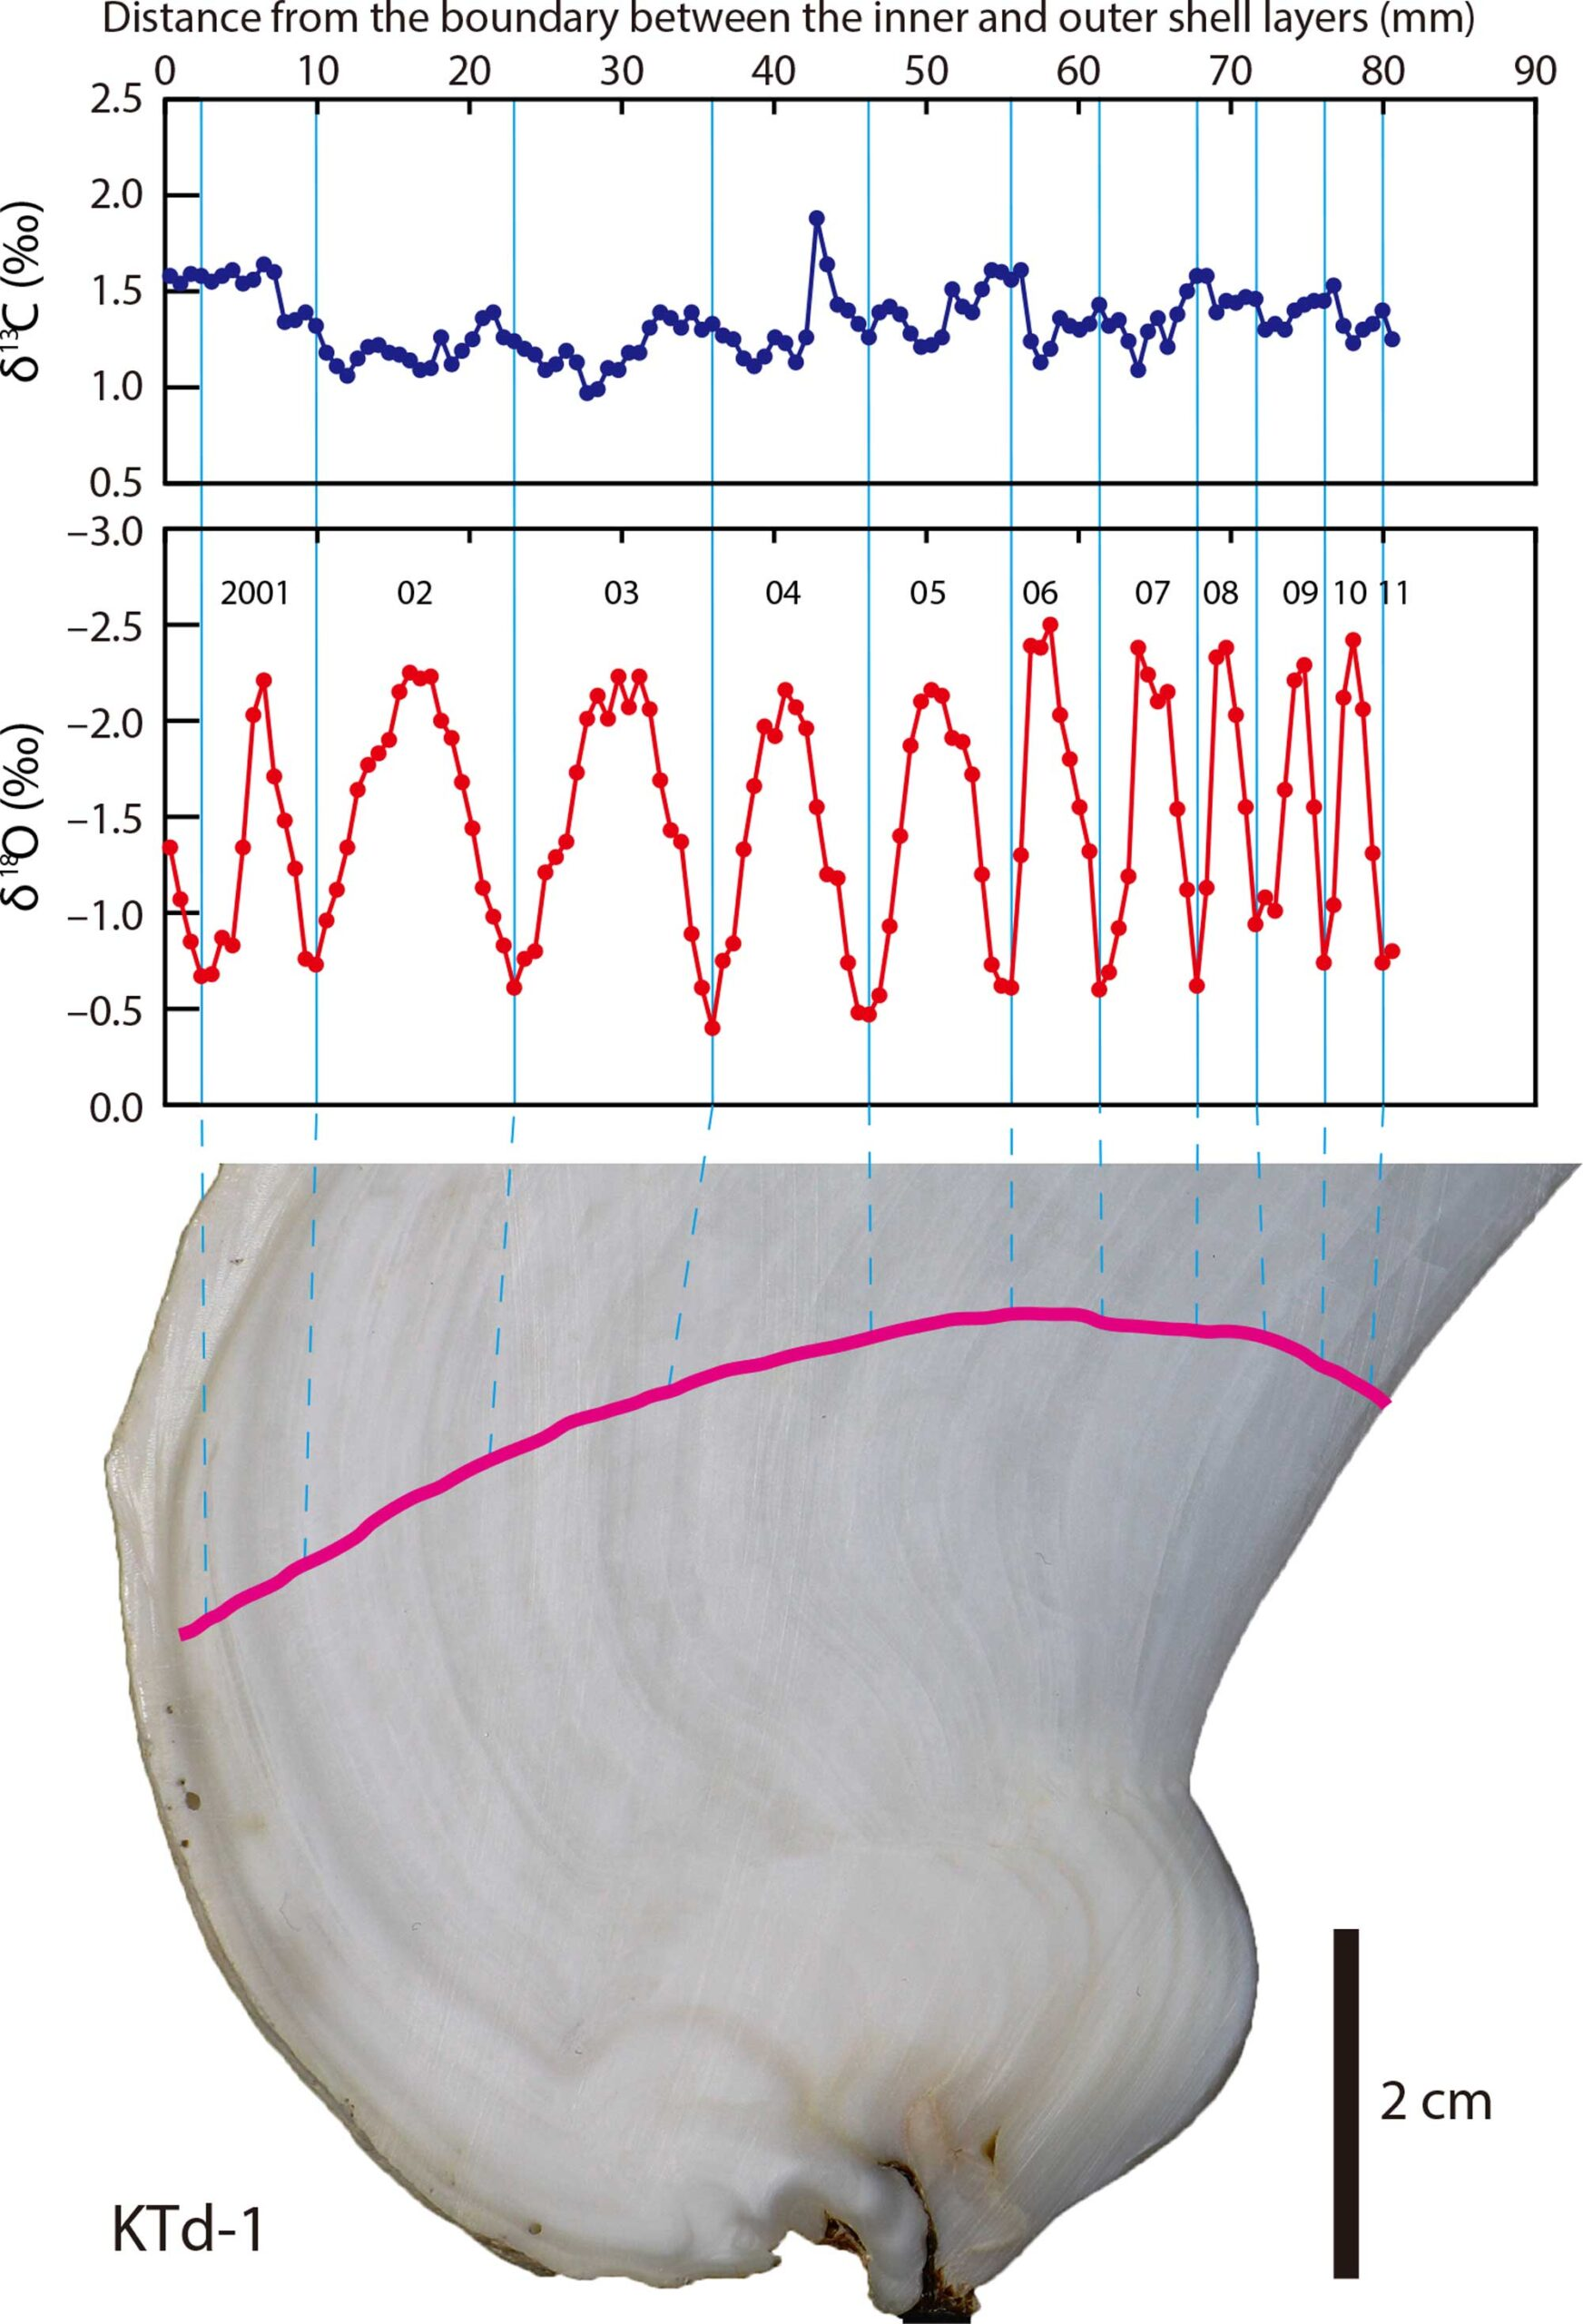 Illustration showing the relationship between isotope values and the position from which they were sampled along a growth line on a bivalve specimen.